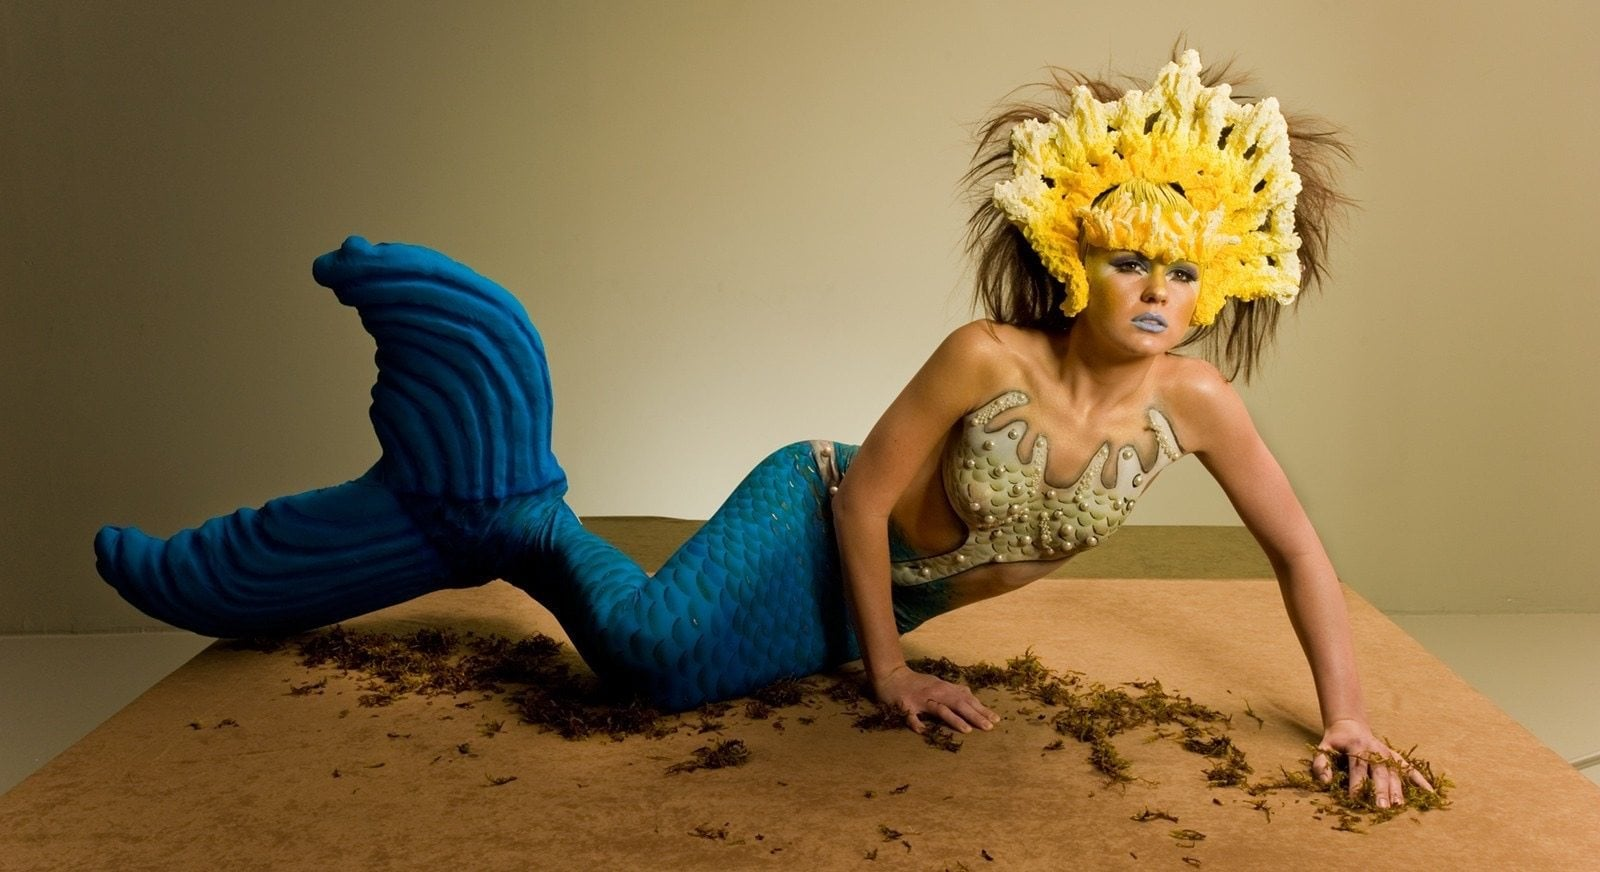 The Mermaid Model Project""